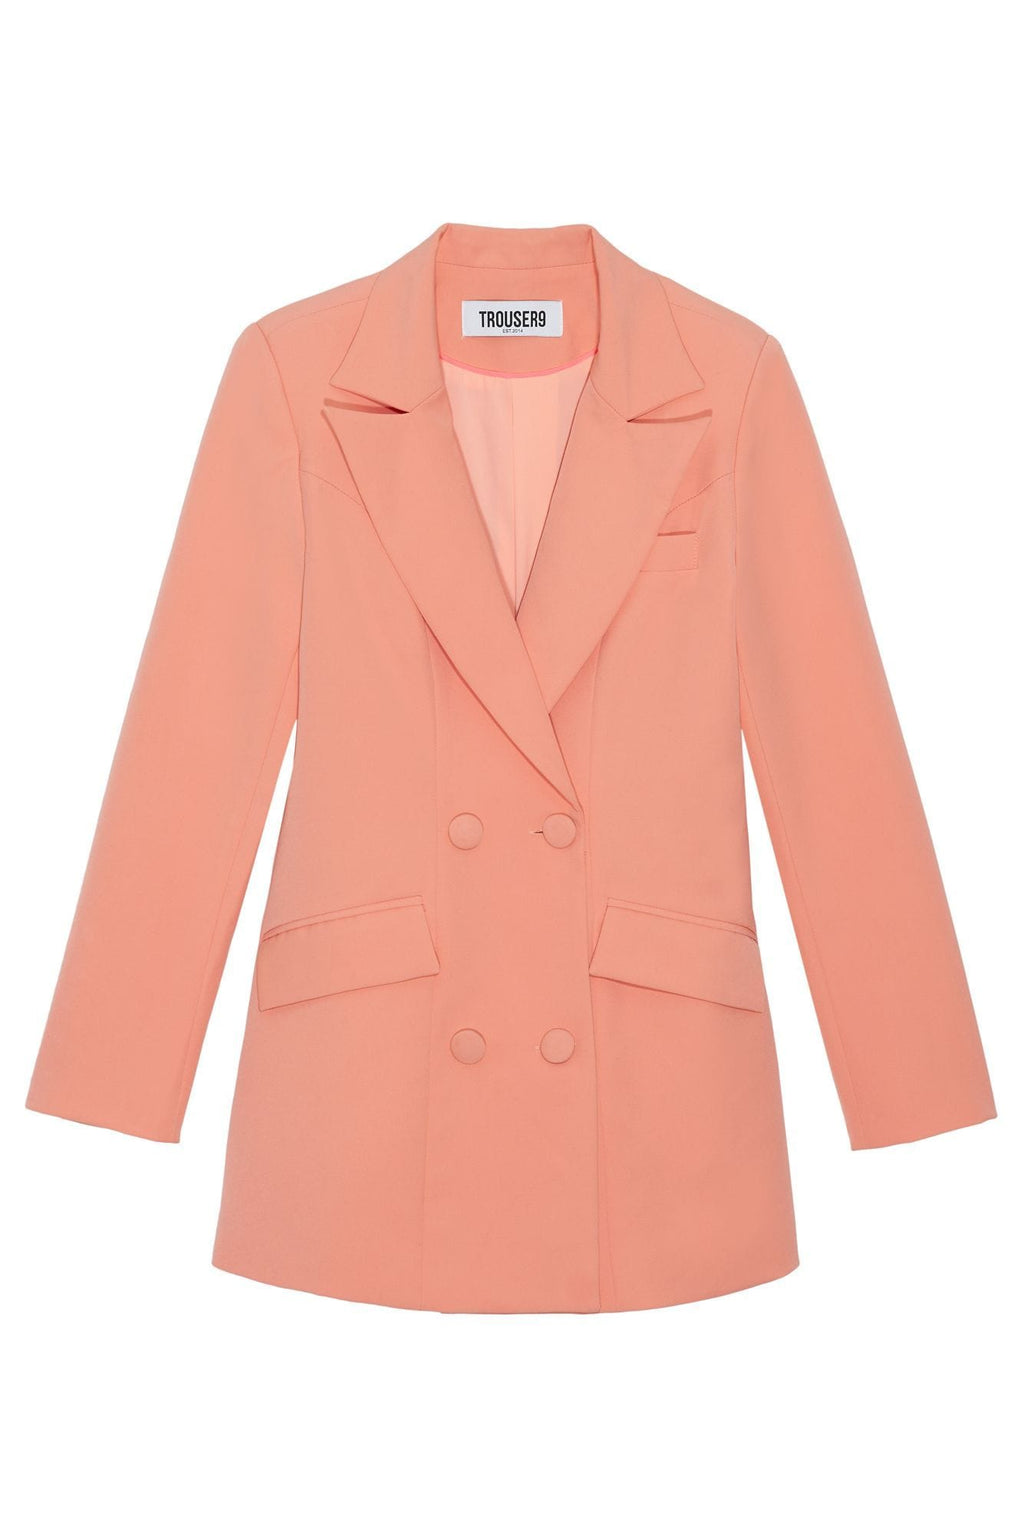 women's Peach double breasted blazer